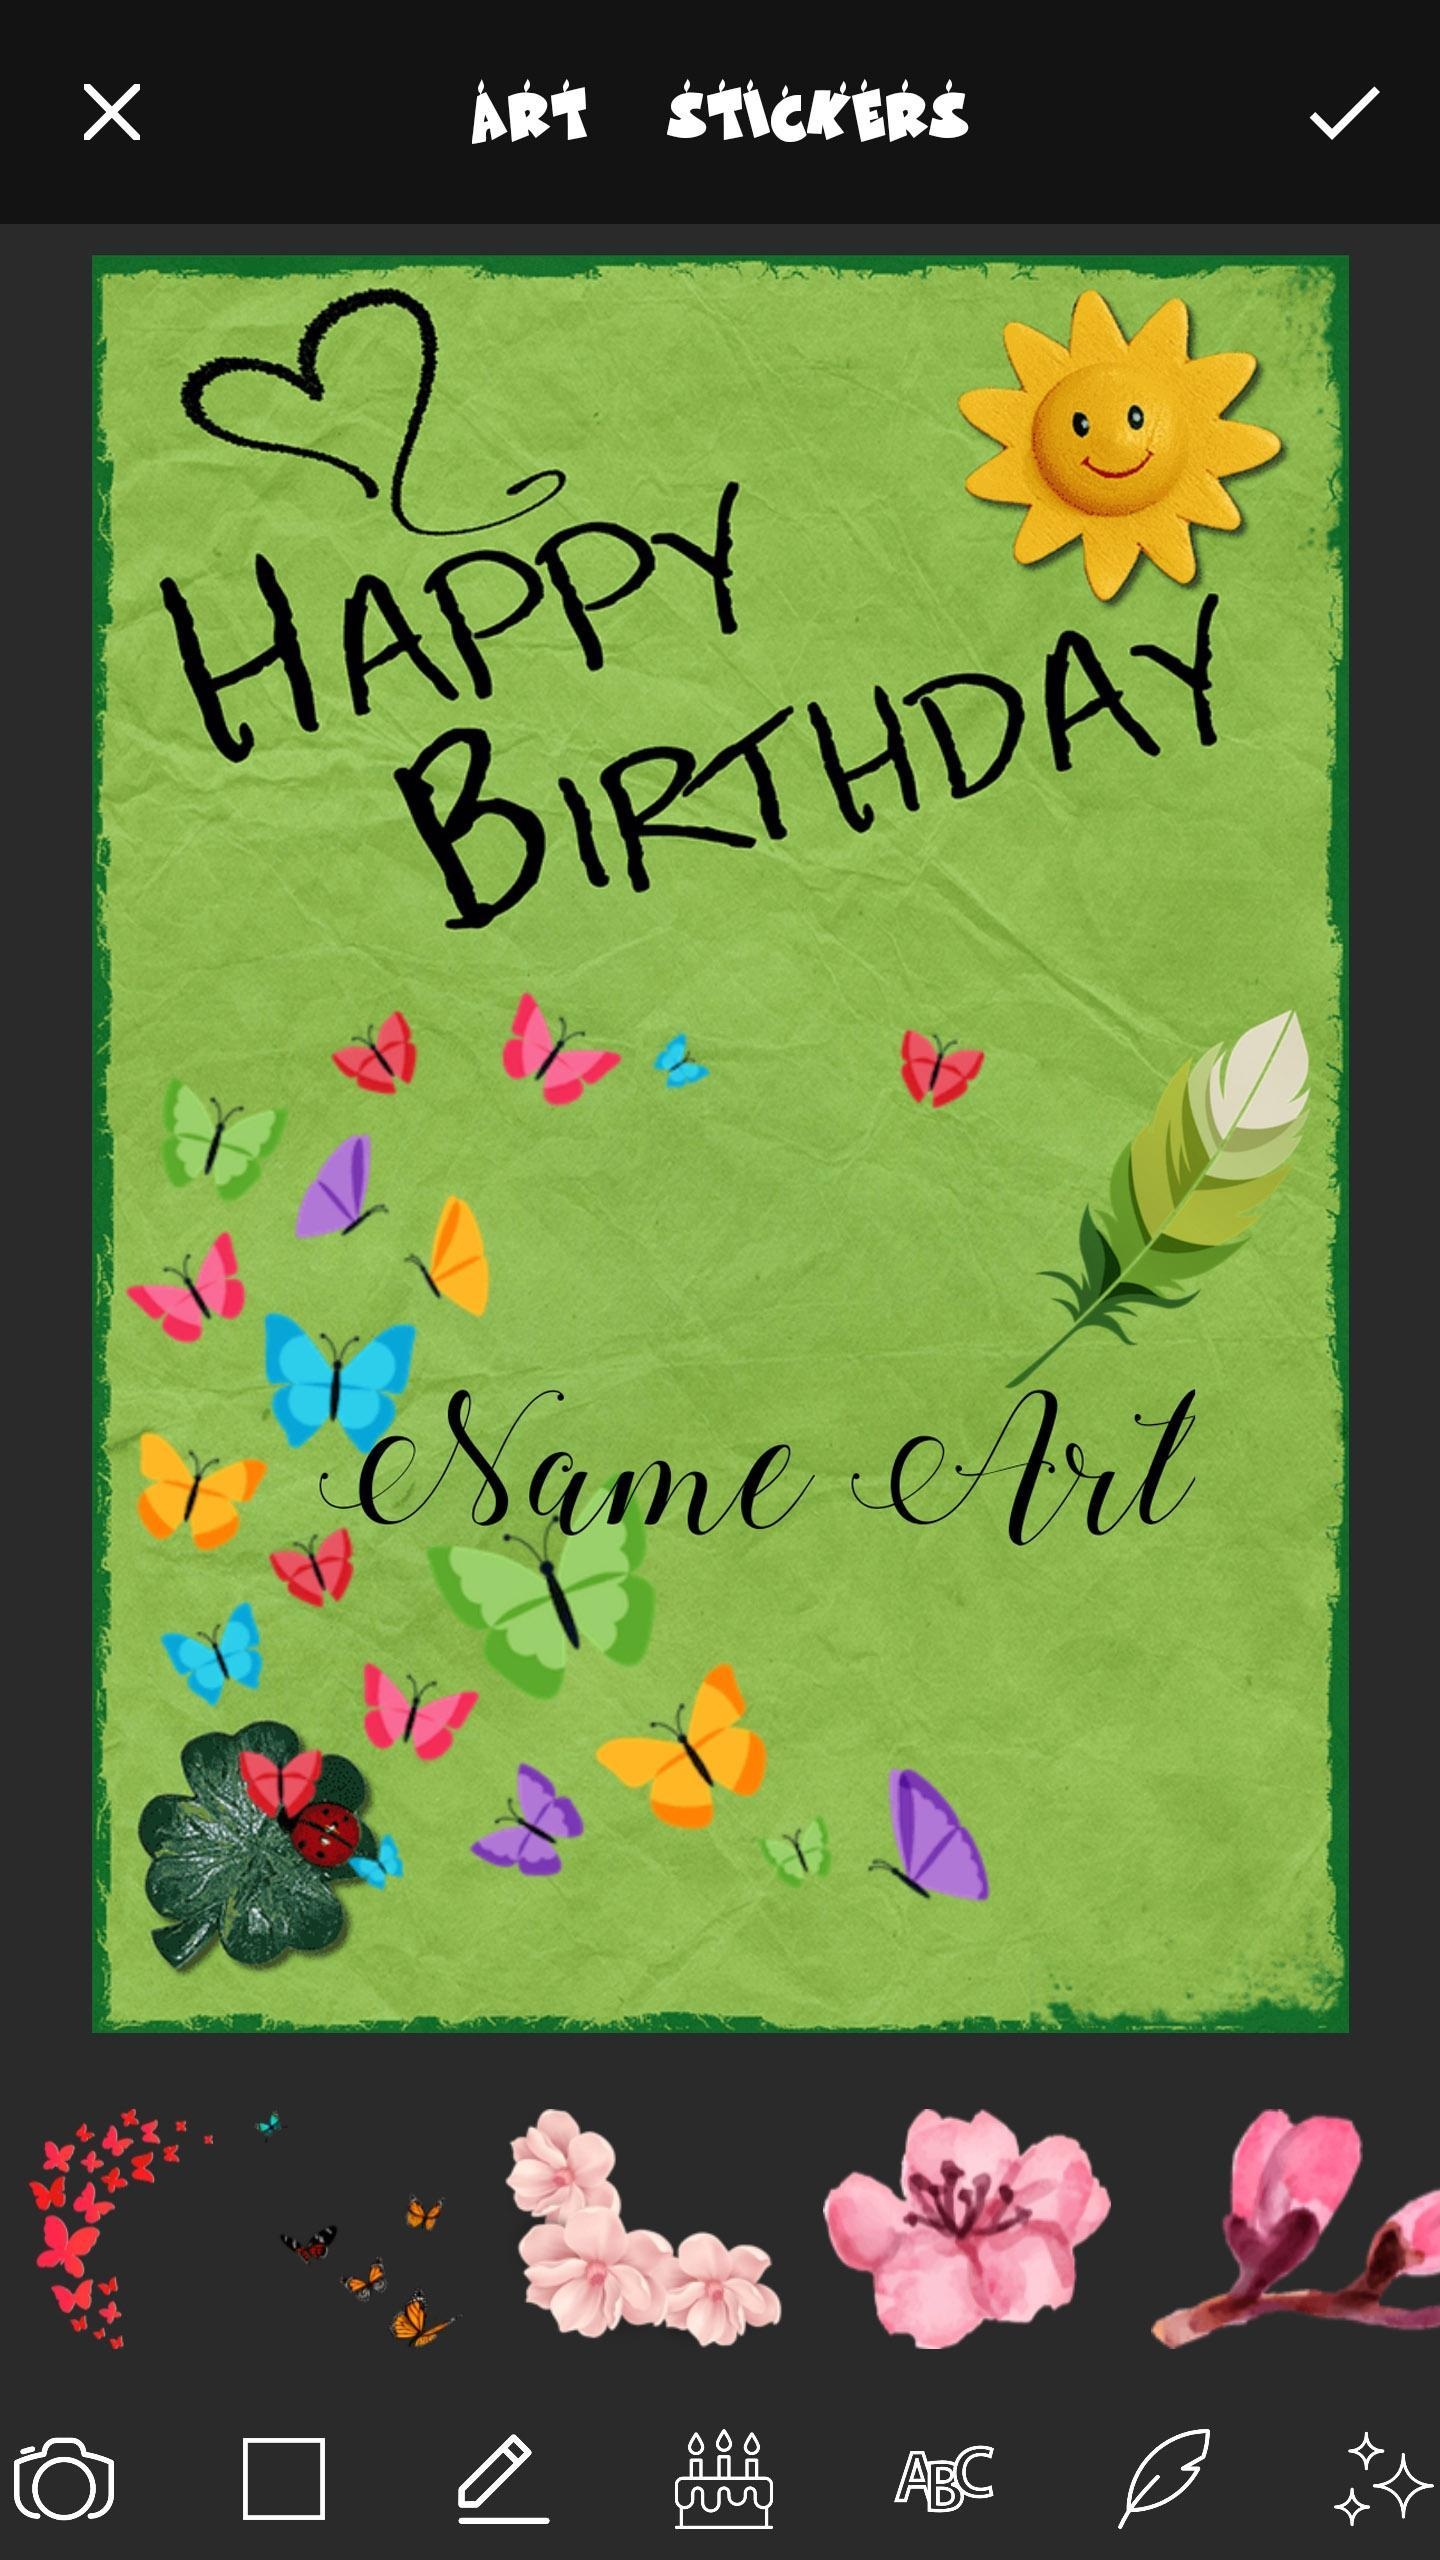 Wondrous Birthday Cards Name Art Maker For Android Apk Download Funny Birthday Cards Online Inifofree Goldxyz